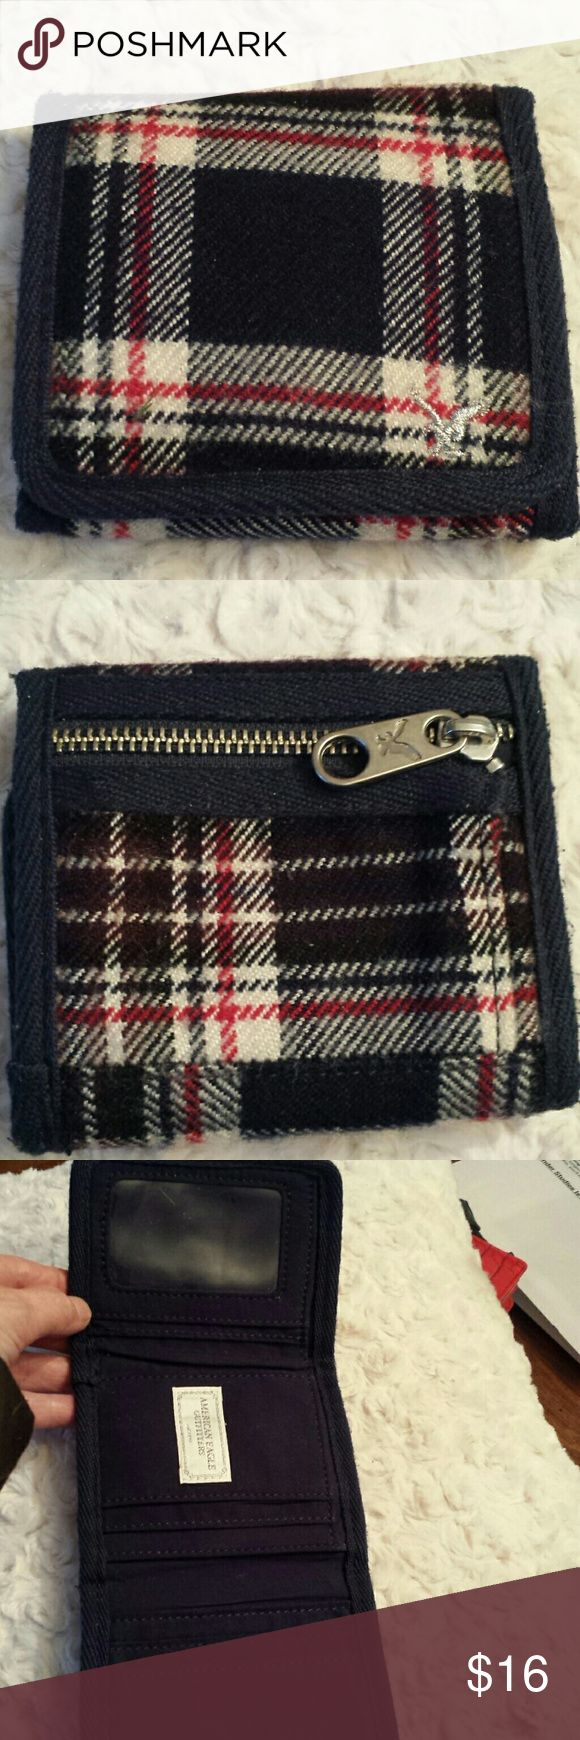 American Eagle Outfitters Plaid Wallet American Eagle Outfitters Plaid Wallet  Gently used American Eagle Outfitters  Bags Wallets